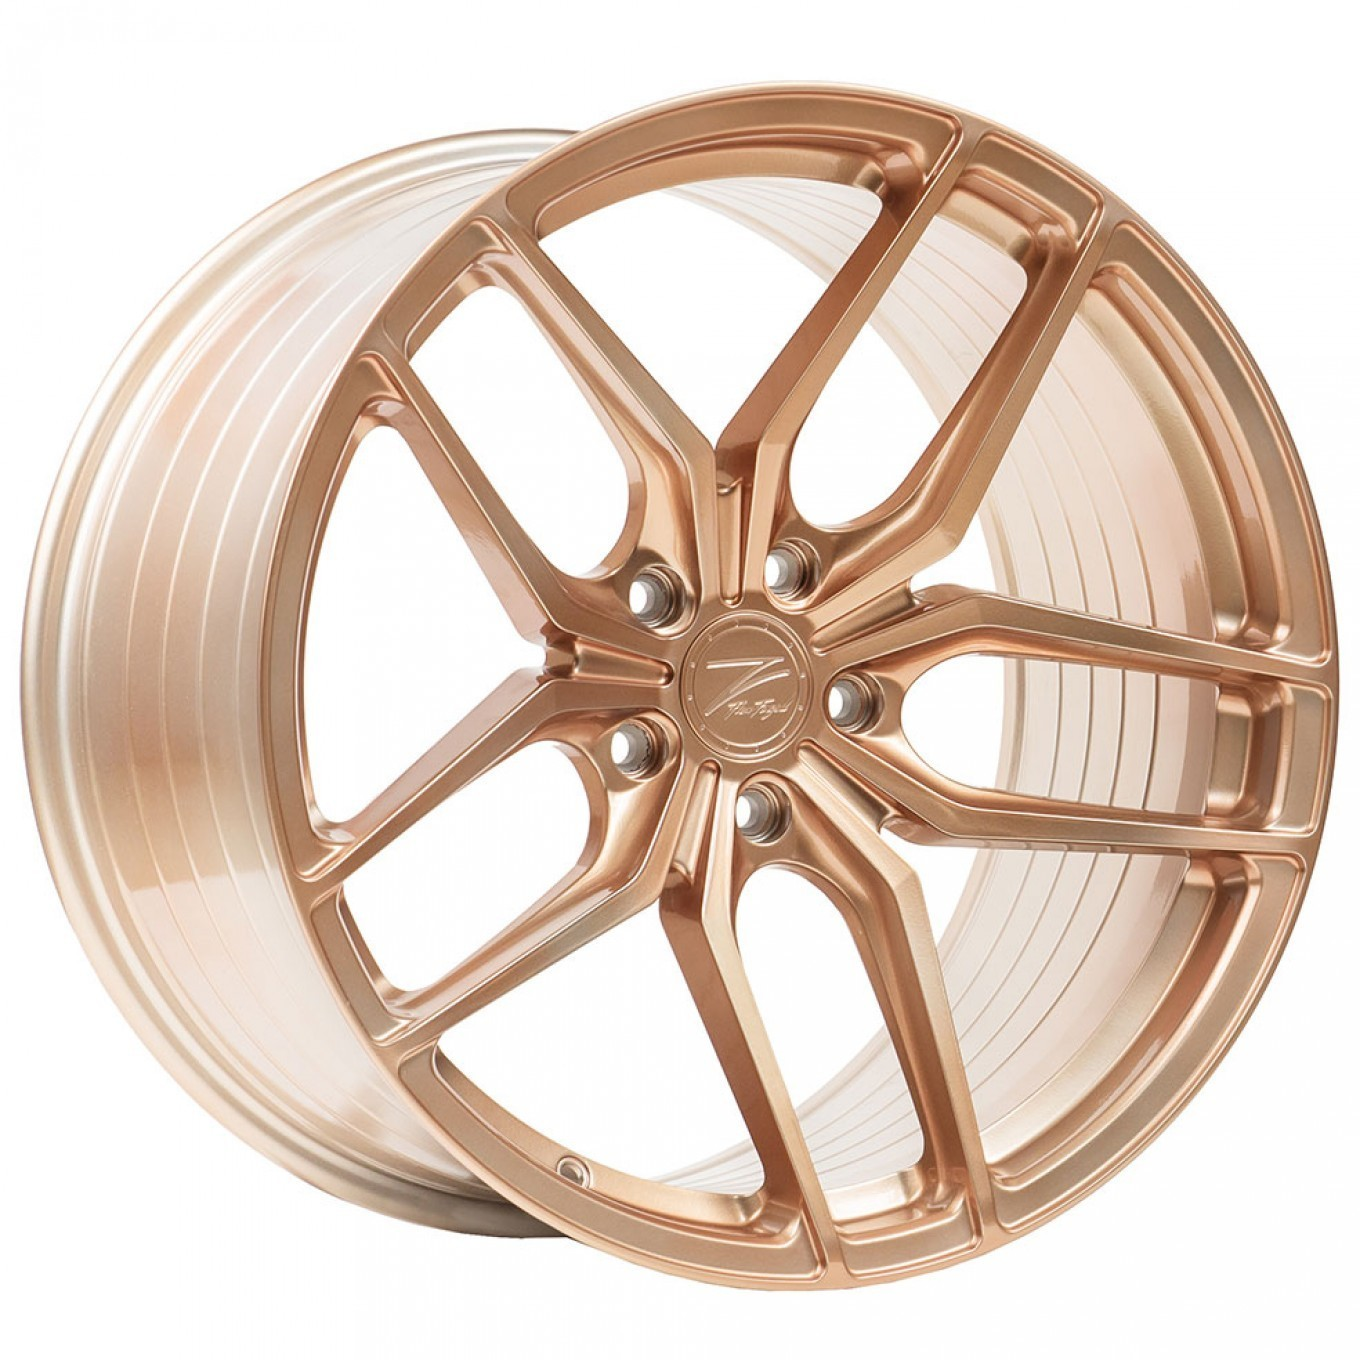 Z-Performance ZP2.1 8x19 ET40 5x120 FlowForged Royal Copper